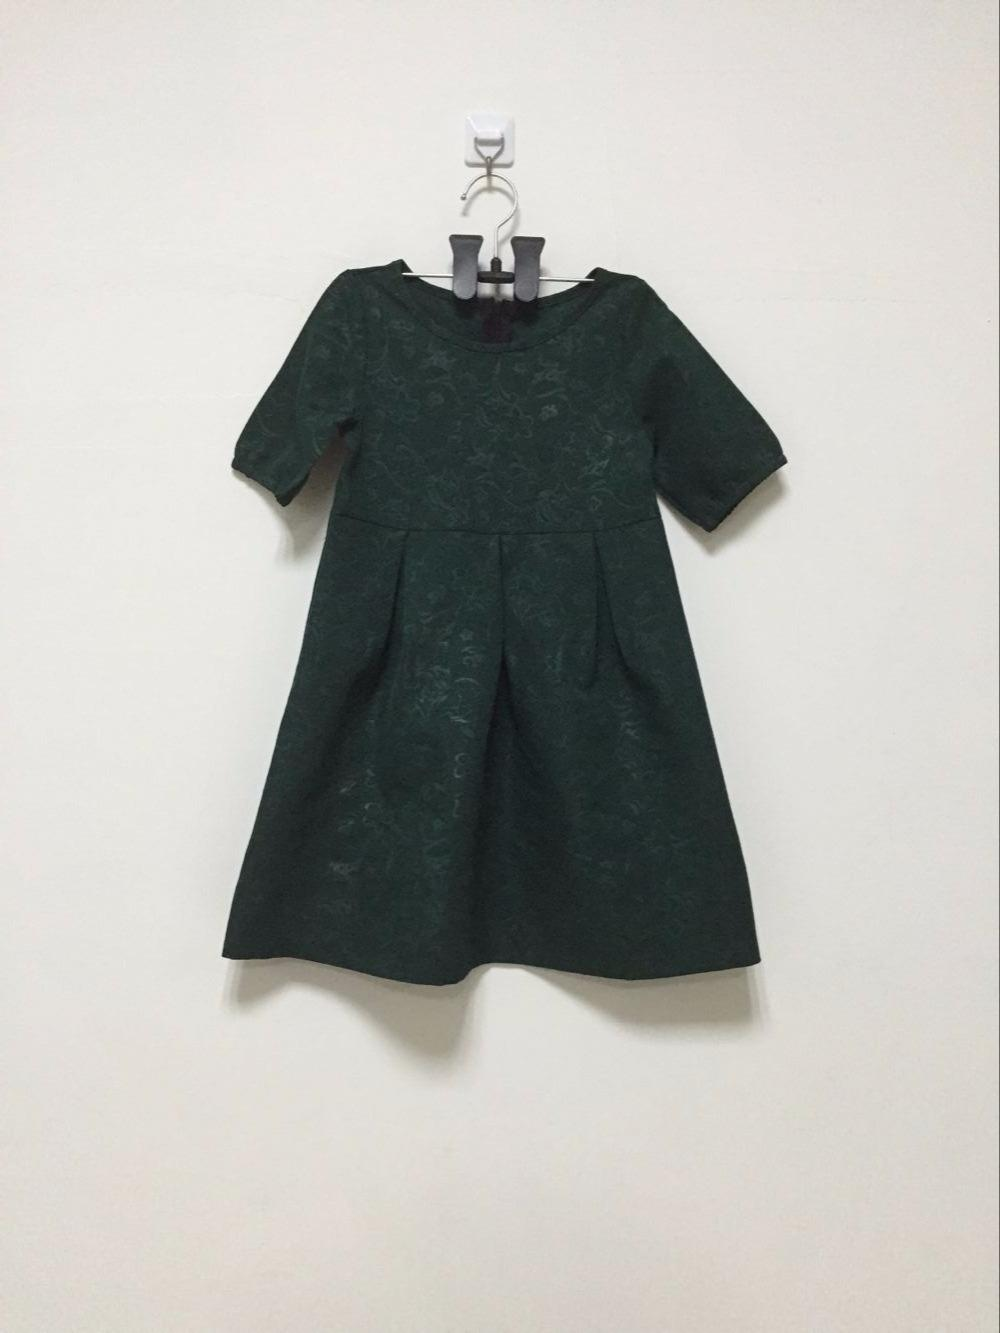 Family Matching Outfits Mommy and me dress Green Matching Mother Daughter Dresses for girl Vestidos Plus Size 3XL Large 2017 New